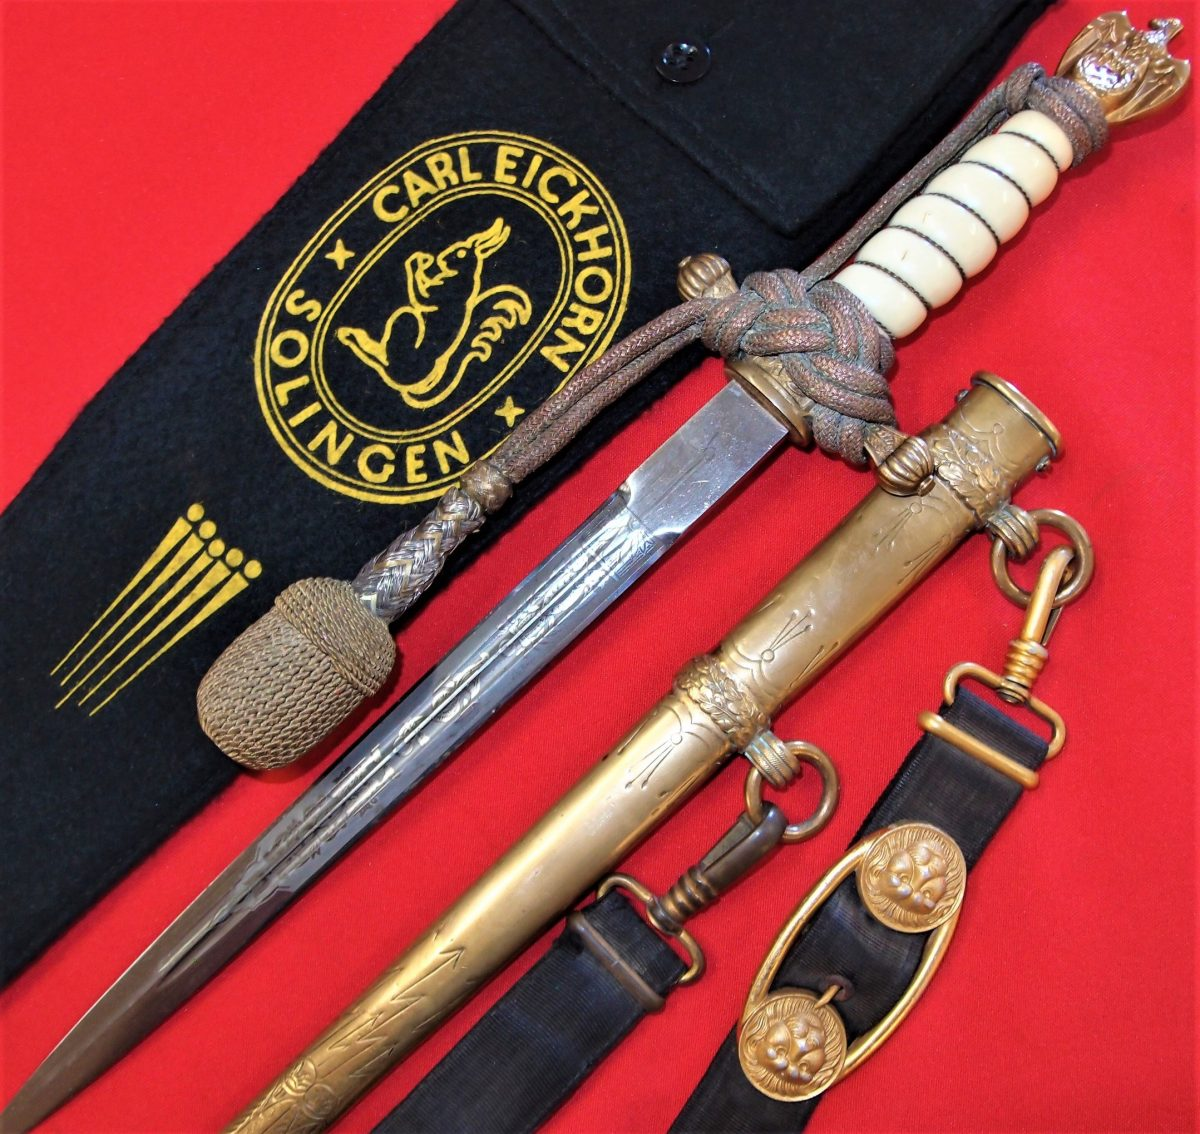 2ND PATTERN NAZI GERMAN NAVY OFFICER'S DAGGER, SCABBARD, KNOT & HANGARS WITH MAKER BAG BY CARL EICKHORN